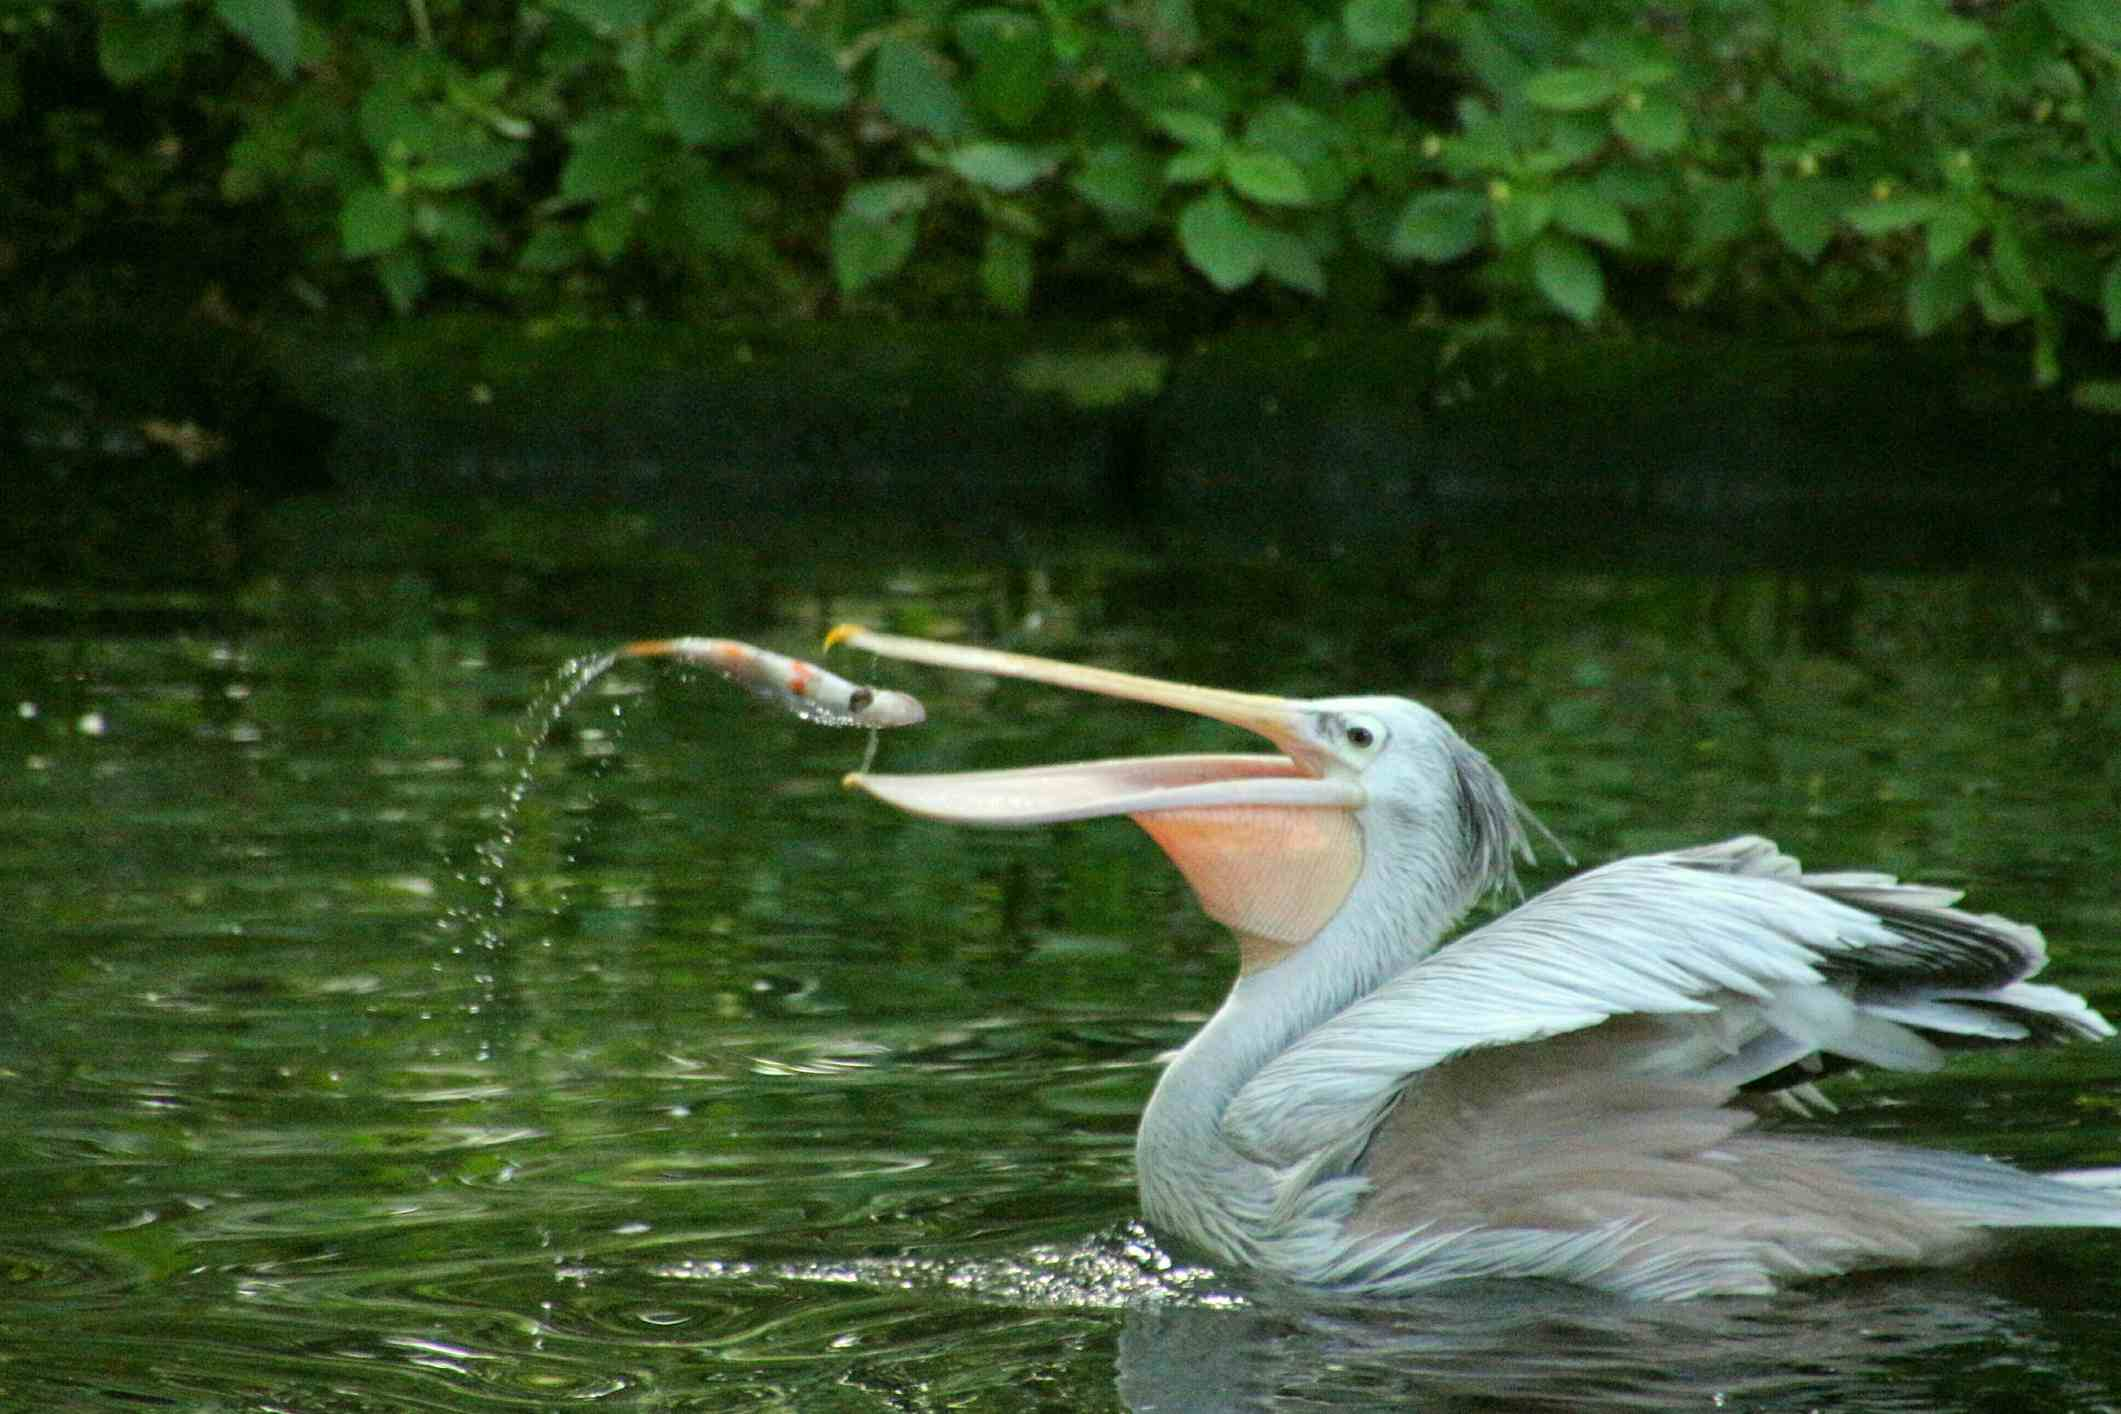 Pelican catching a fish in the water